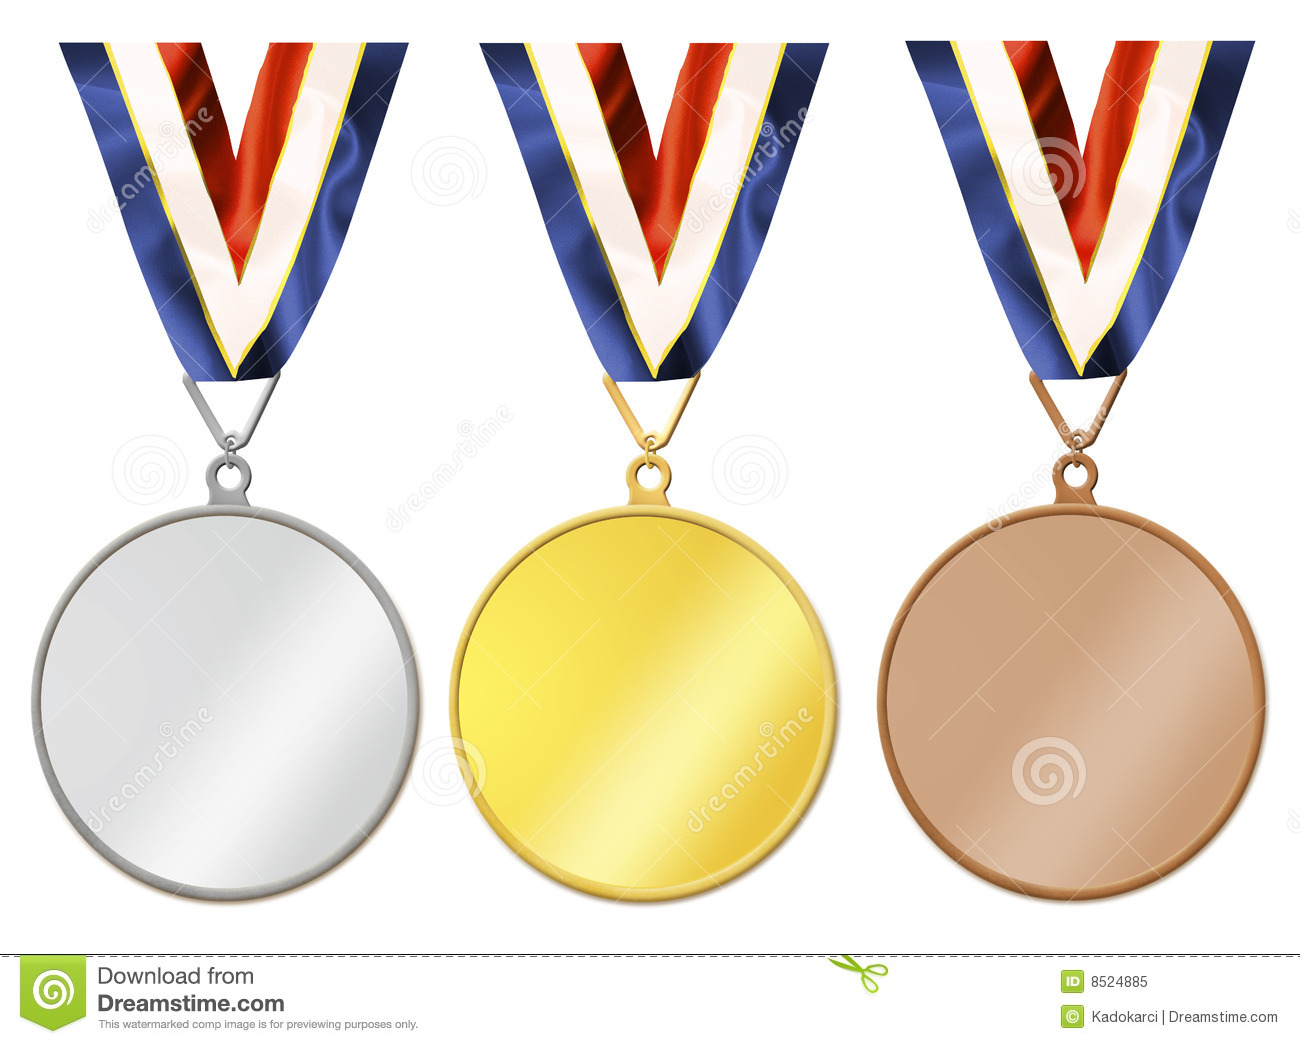 Olympic Medal Clipart at GetDrawings com | Free for personal